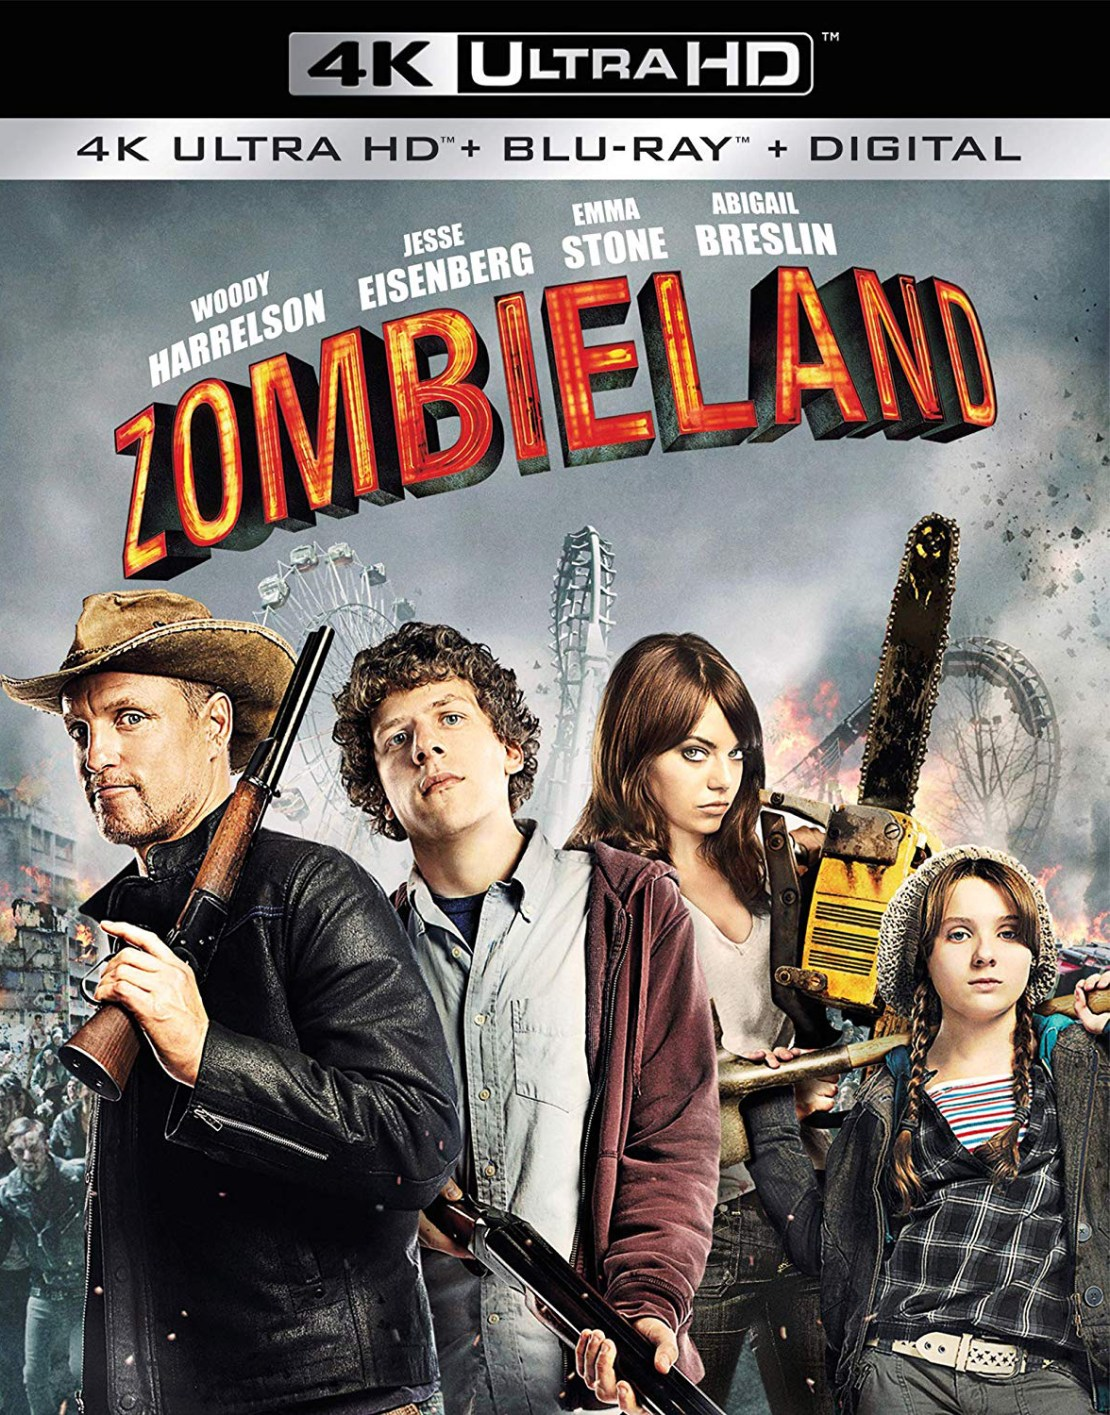 Zombieland [Includes Digital Copy] [4K Ultra HD Blu-ray/Blu-ray] [2 Discs] [2009]